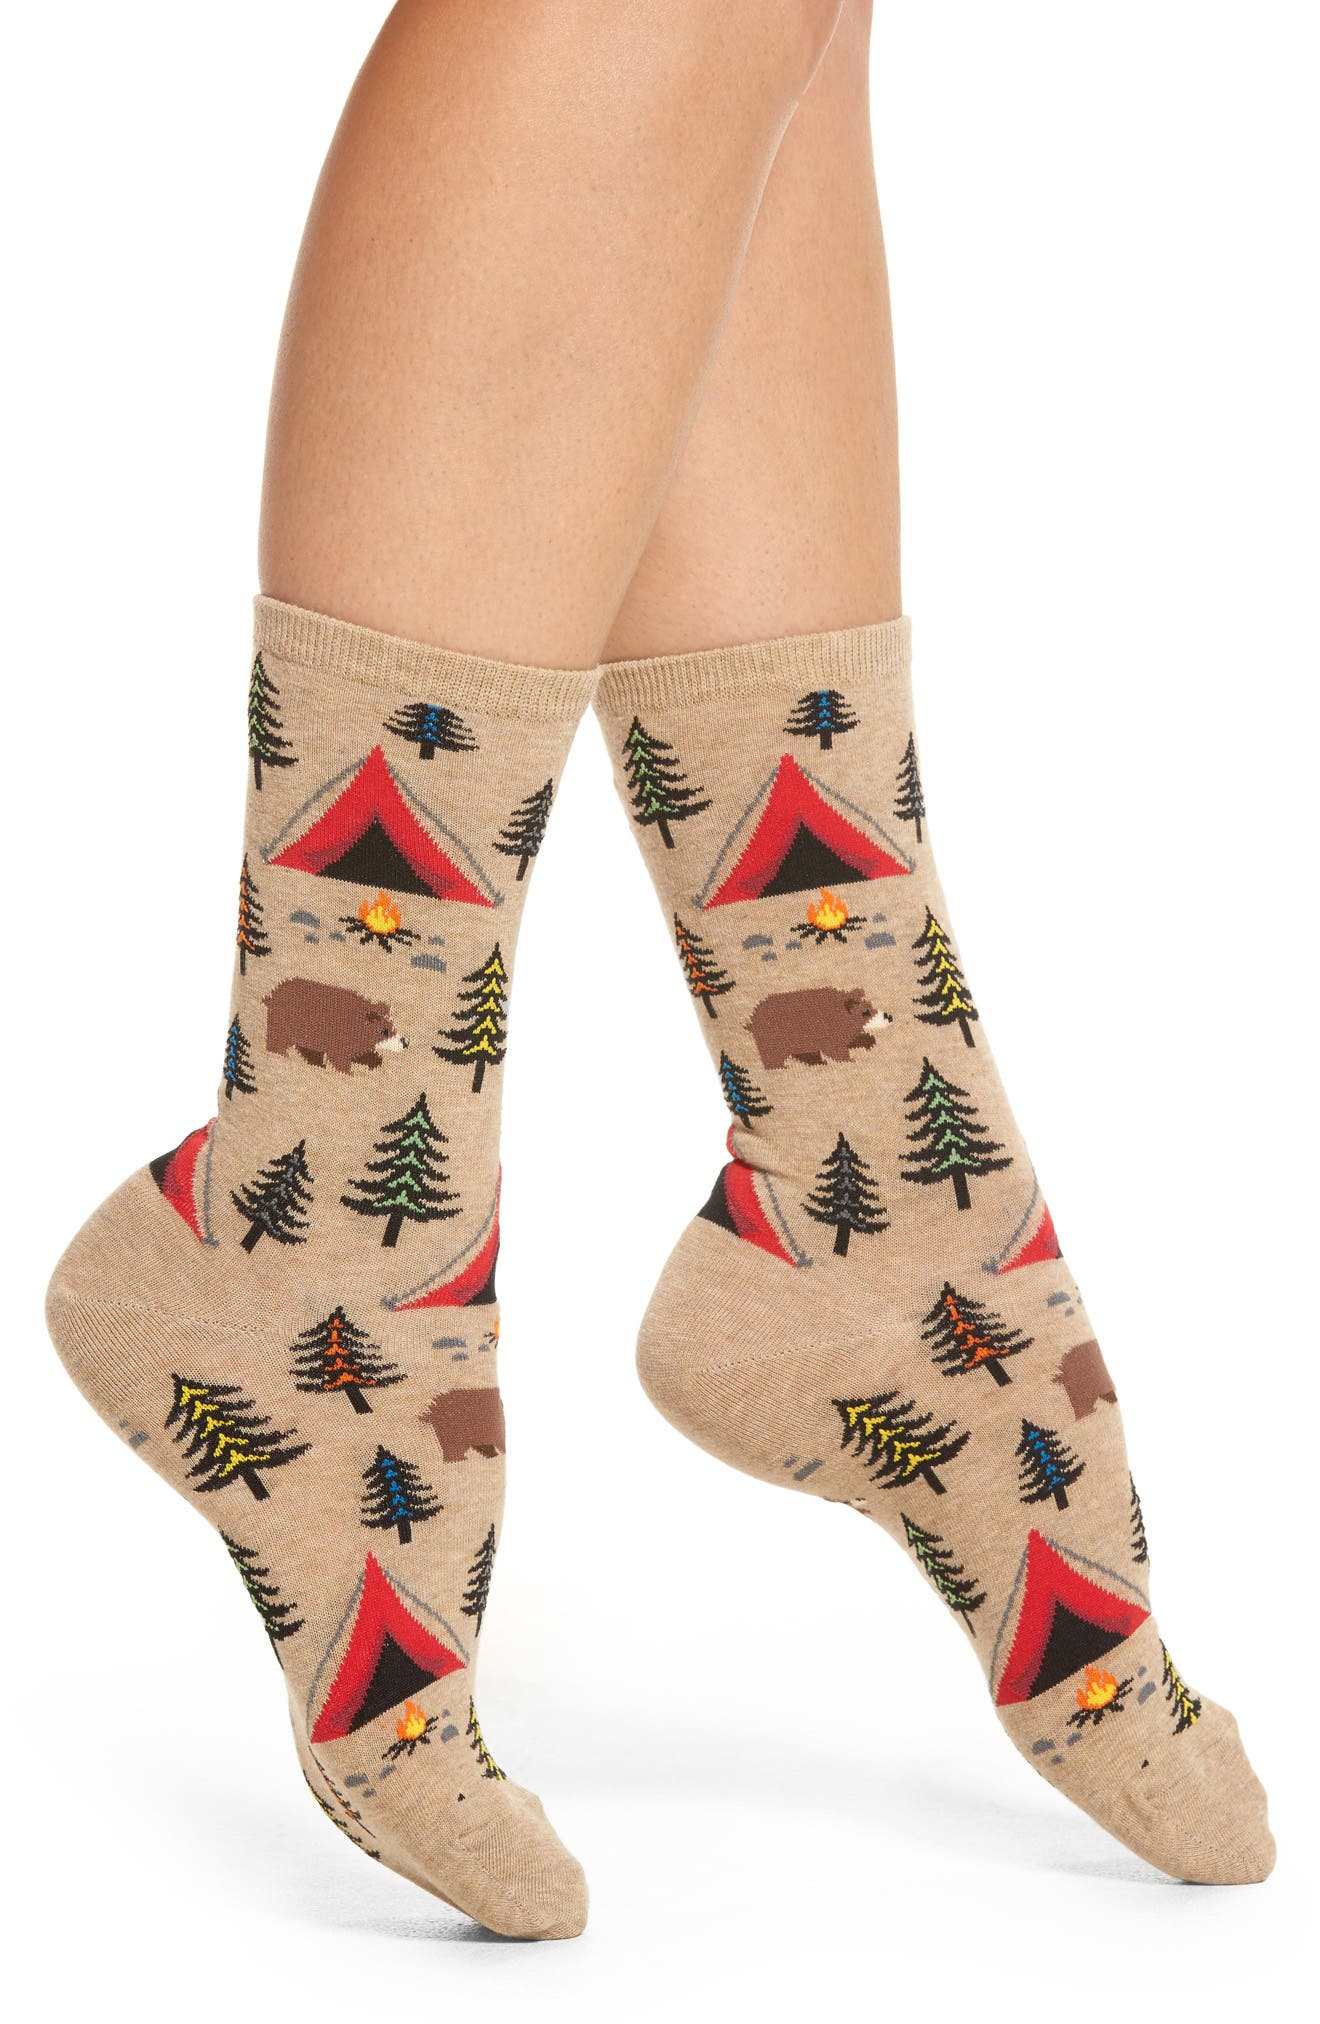 Bear Tent Socks,                         Main,                         color, Hemp Heather